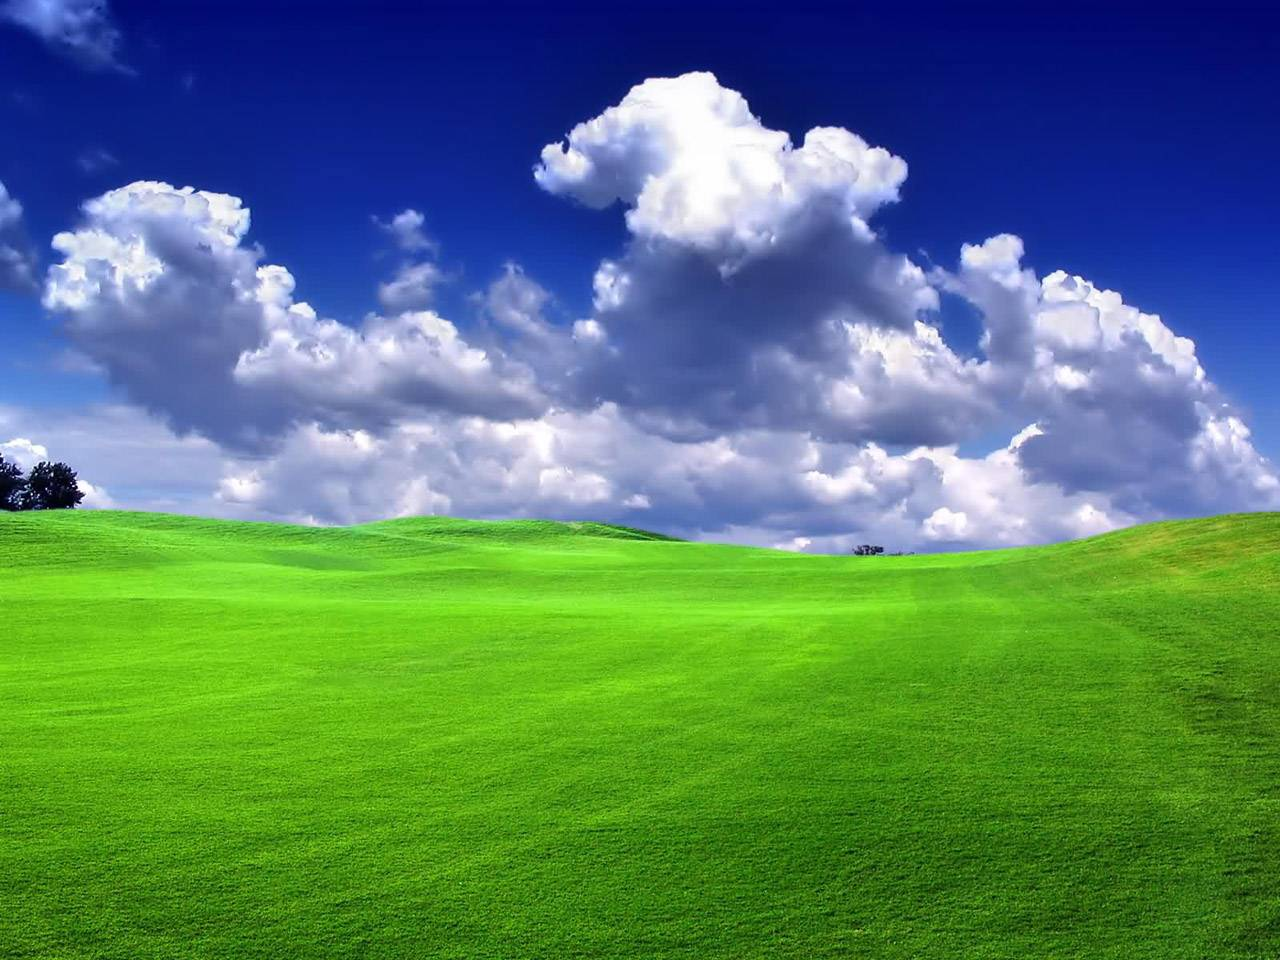 Nature Wallpaper Desktop Full Size Your Hd Id 1280x960PX ~ Nature ...